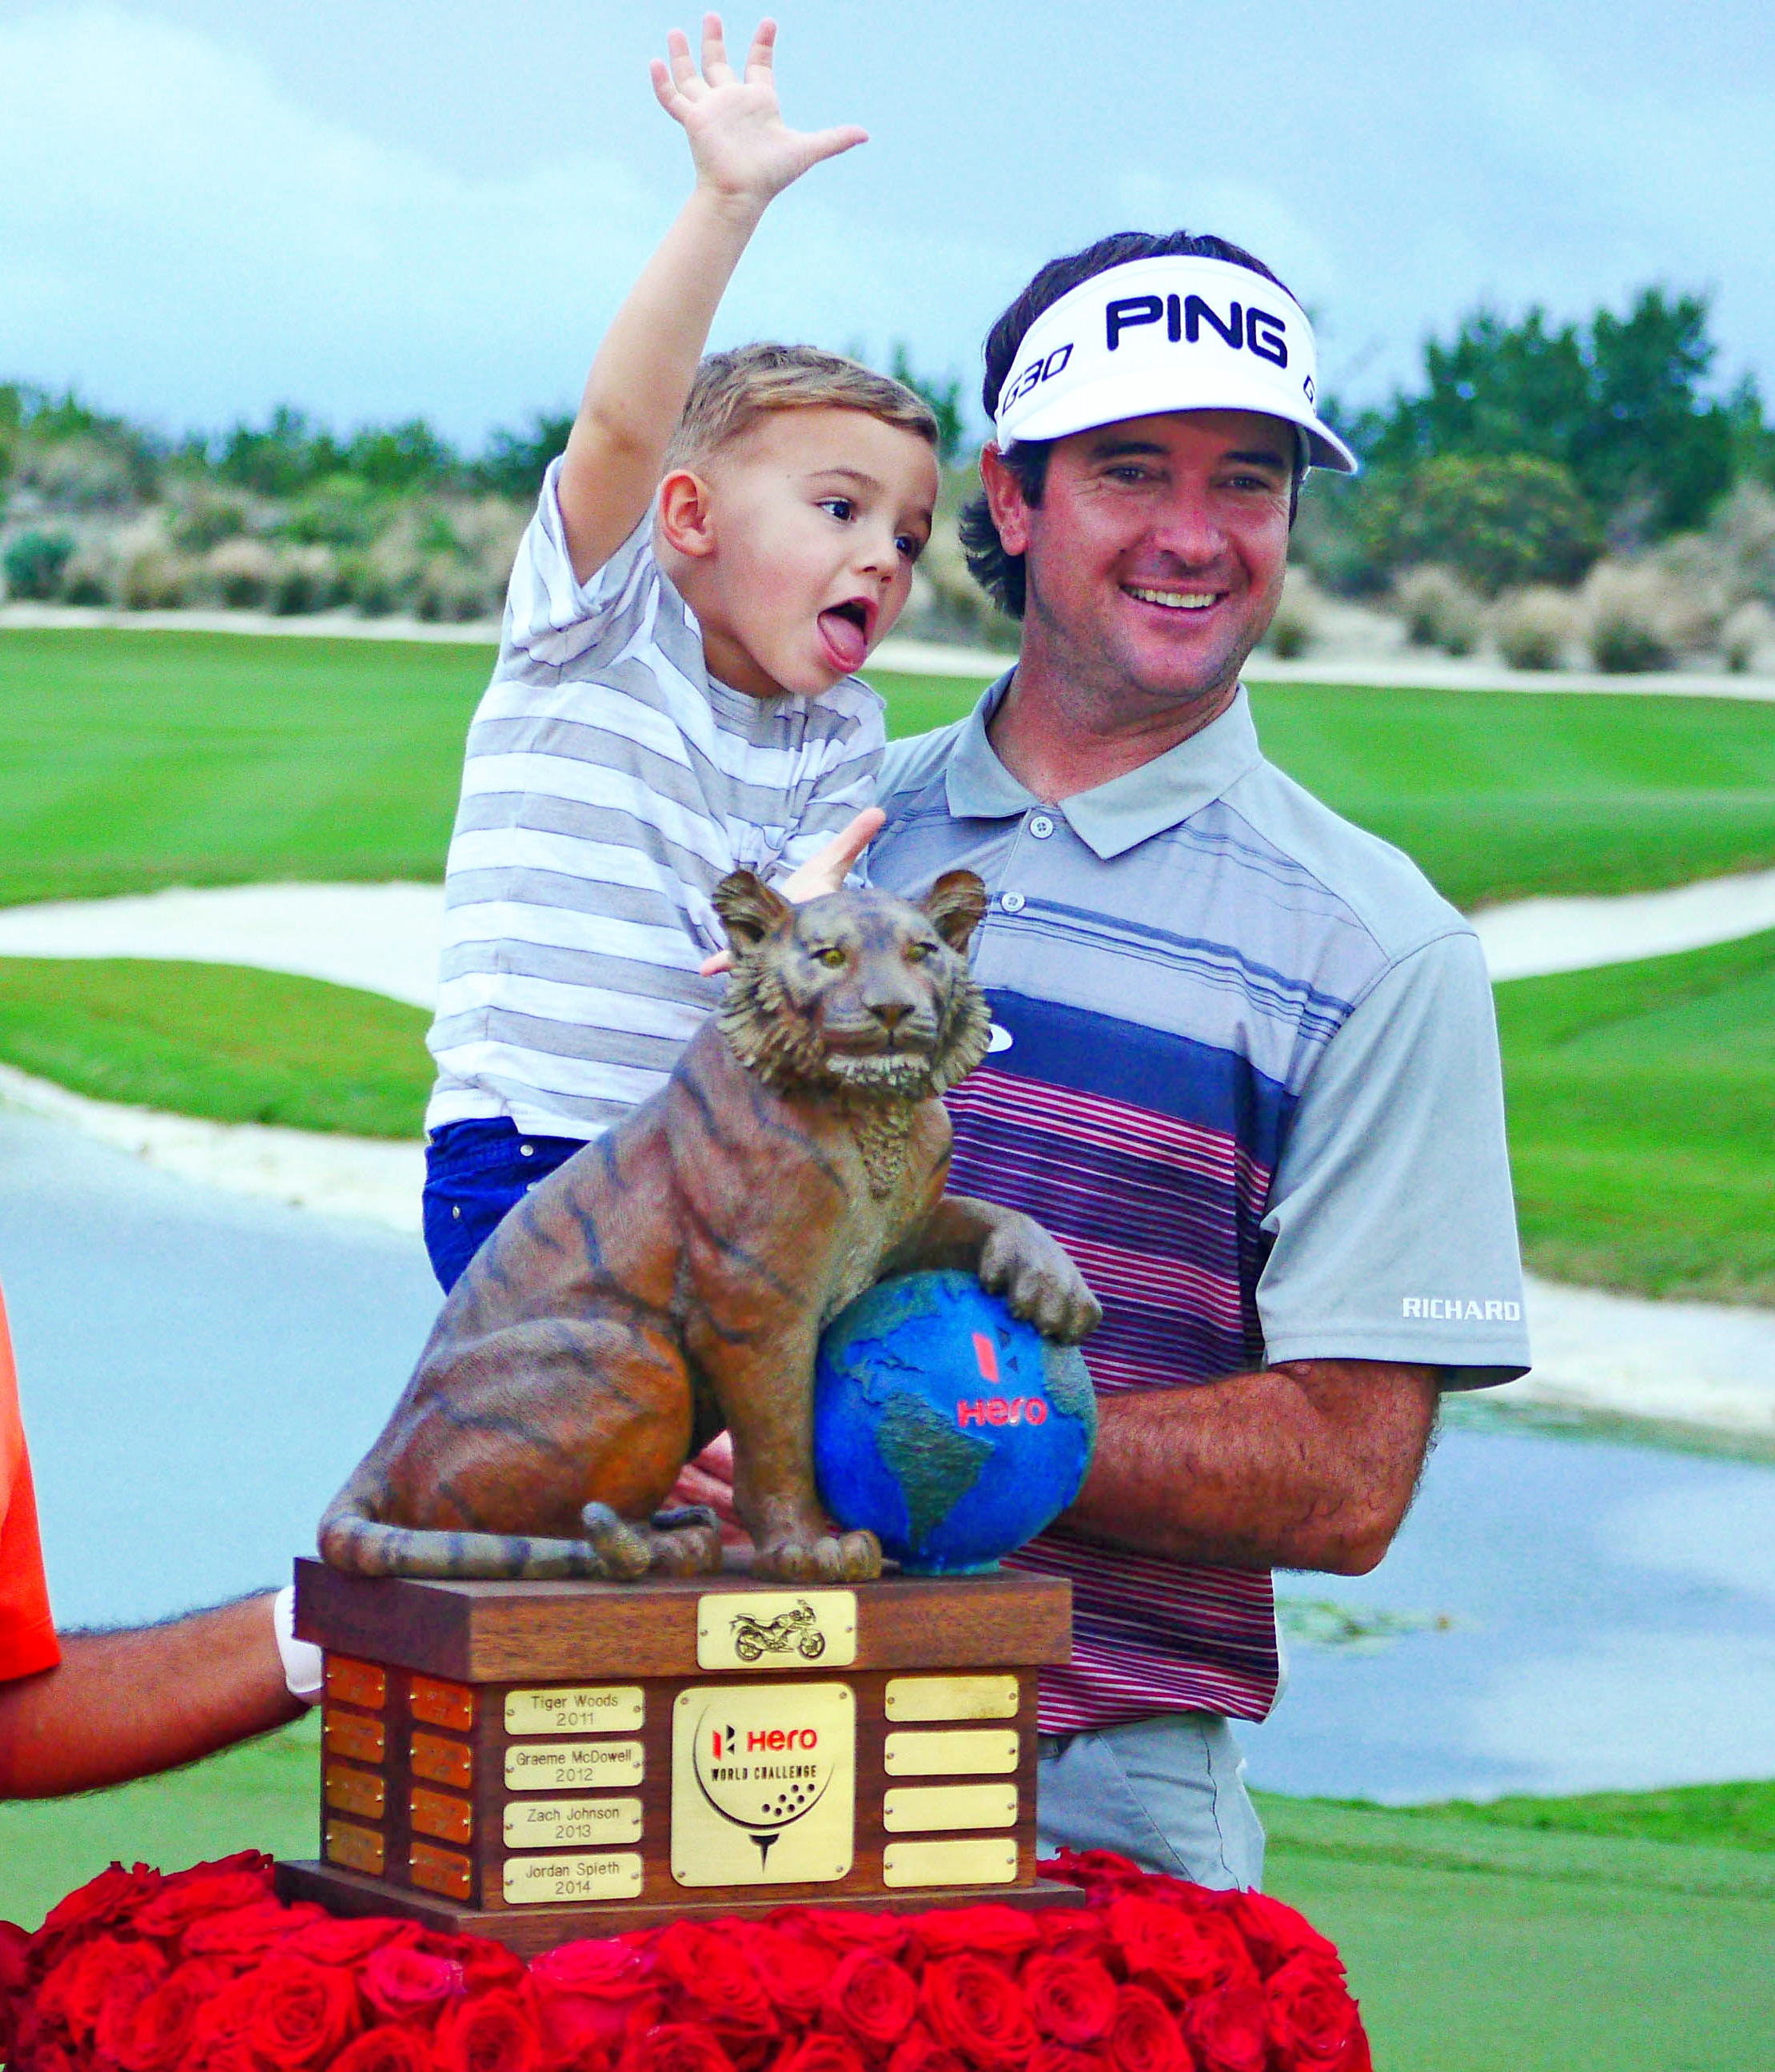 Bubba Watson, right holds his son Caleb, as he stands next to Hero Motorcycle Co. executive Pawan Munjal, left, as they pose behind the Hero World Challenge trophy in Nassau, Bahamas, Sunday, Dec. 6, 2015. Watson, the winner by 3 shots, was never seriously challenged at Albany Golf Club and sailed home to a 6-under 66 for a three-shot victory over Patrick Reed. (AP Photo/Kevin Taylor)